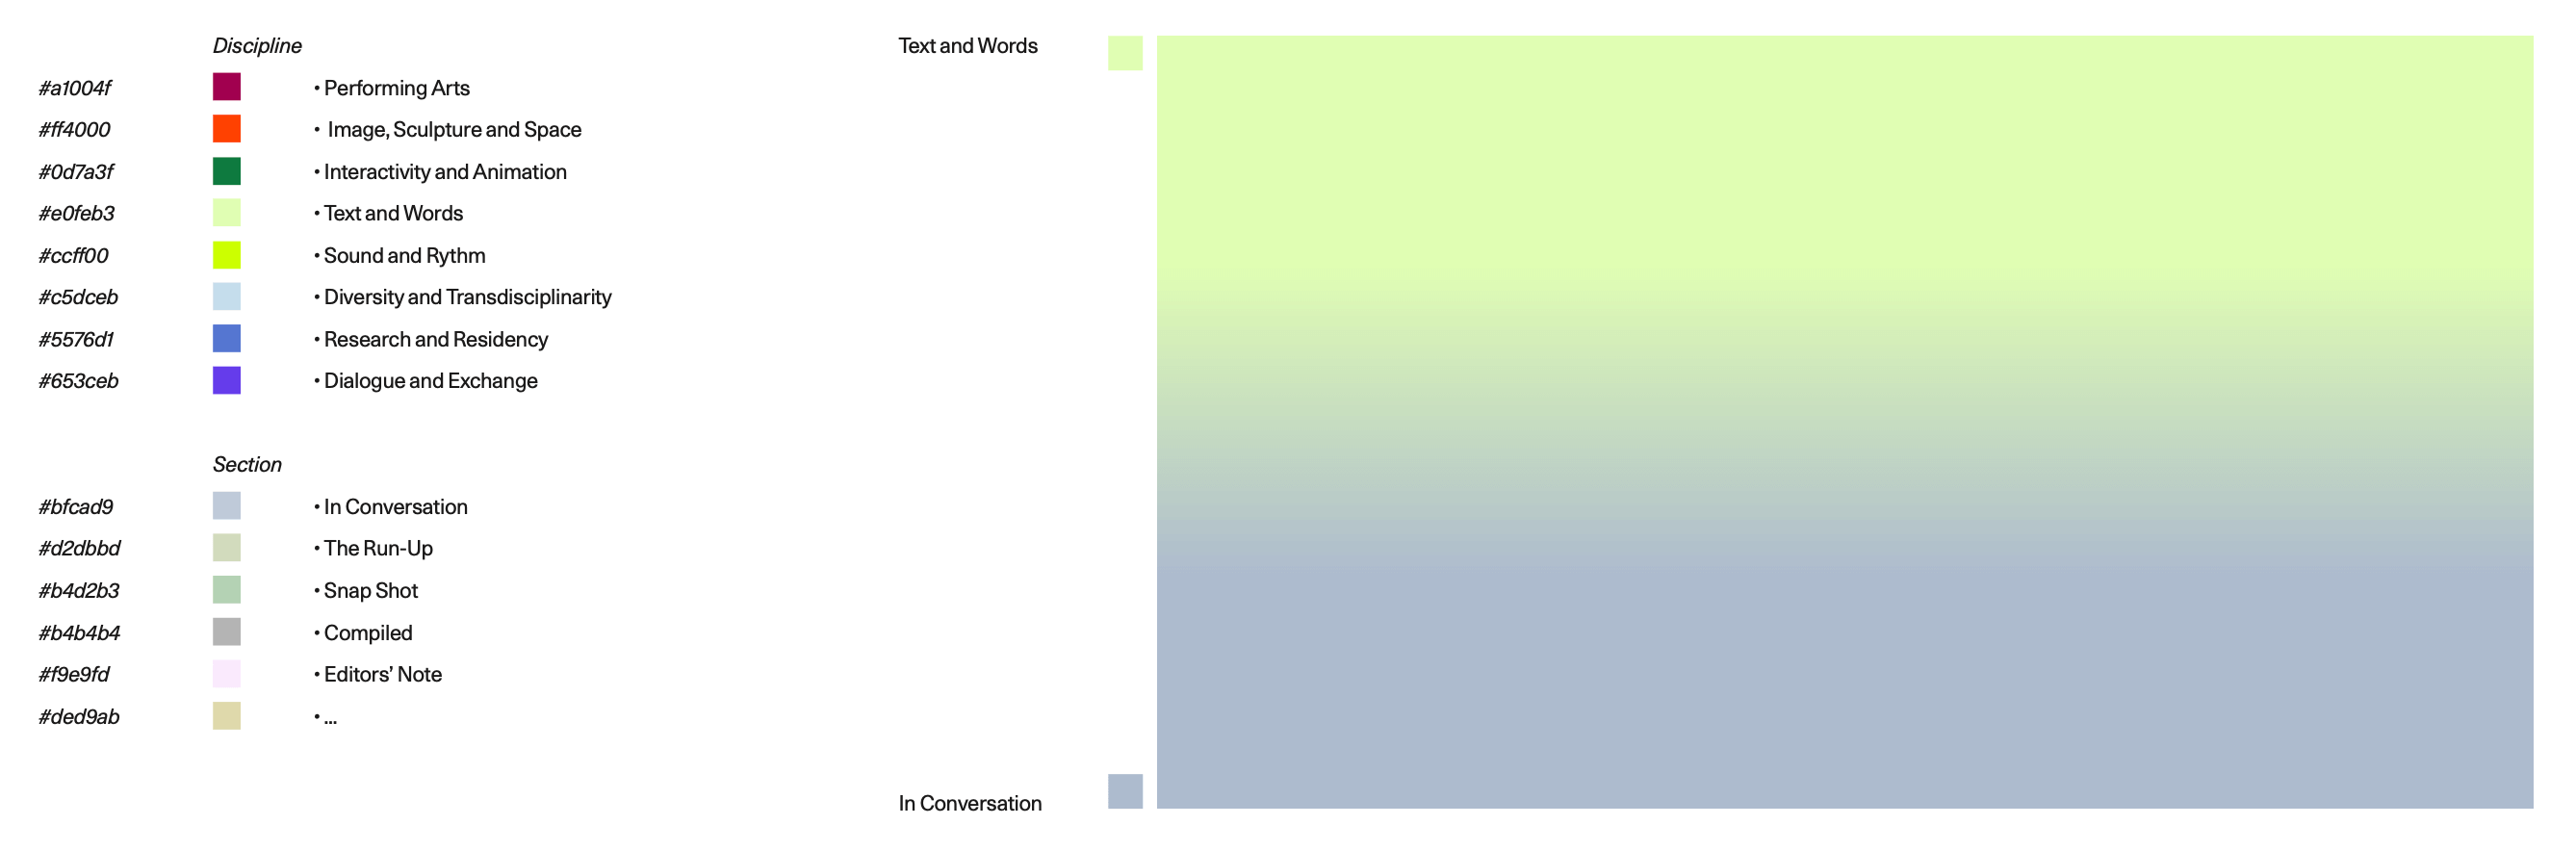 Various Artists - Allocation of Colors